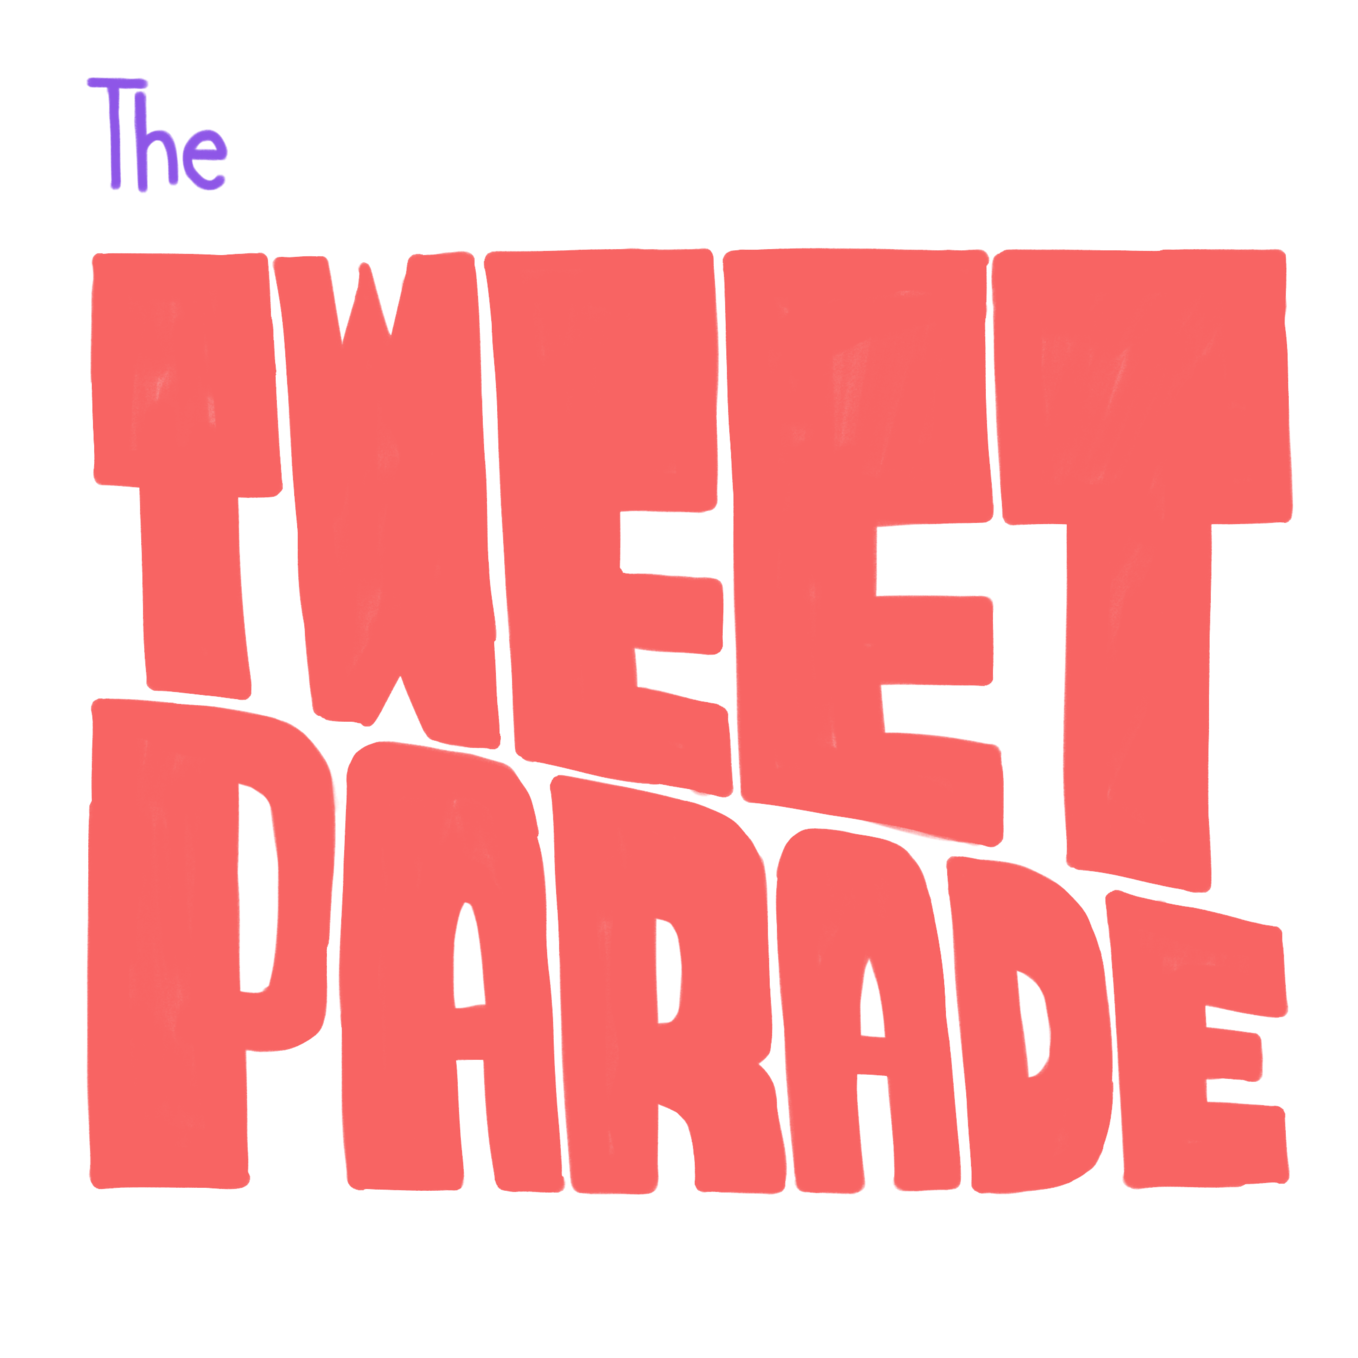 the TWEET PARADE